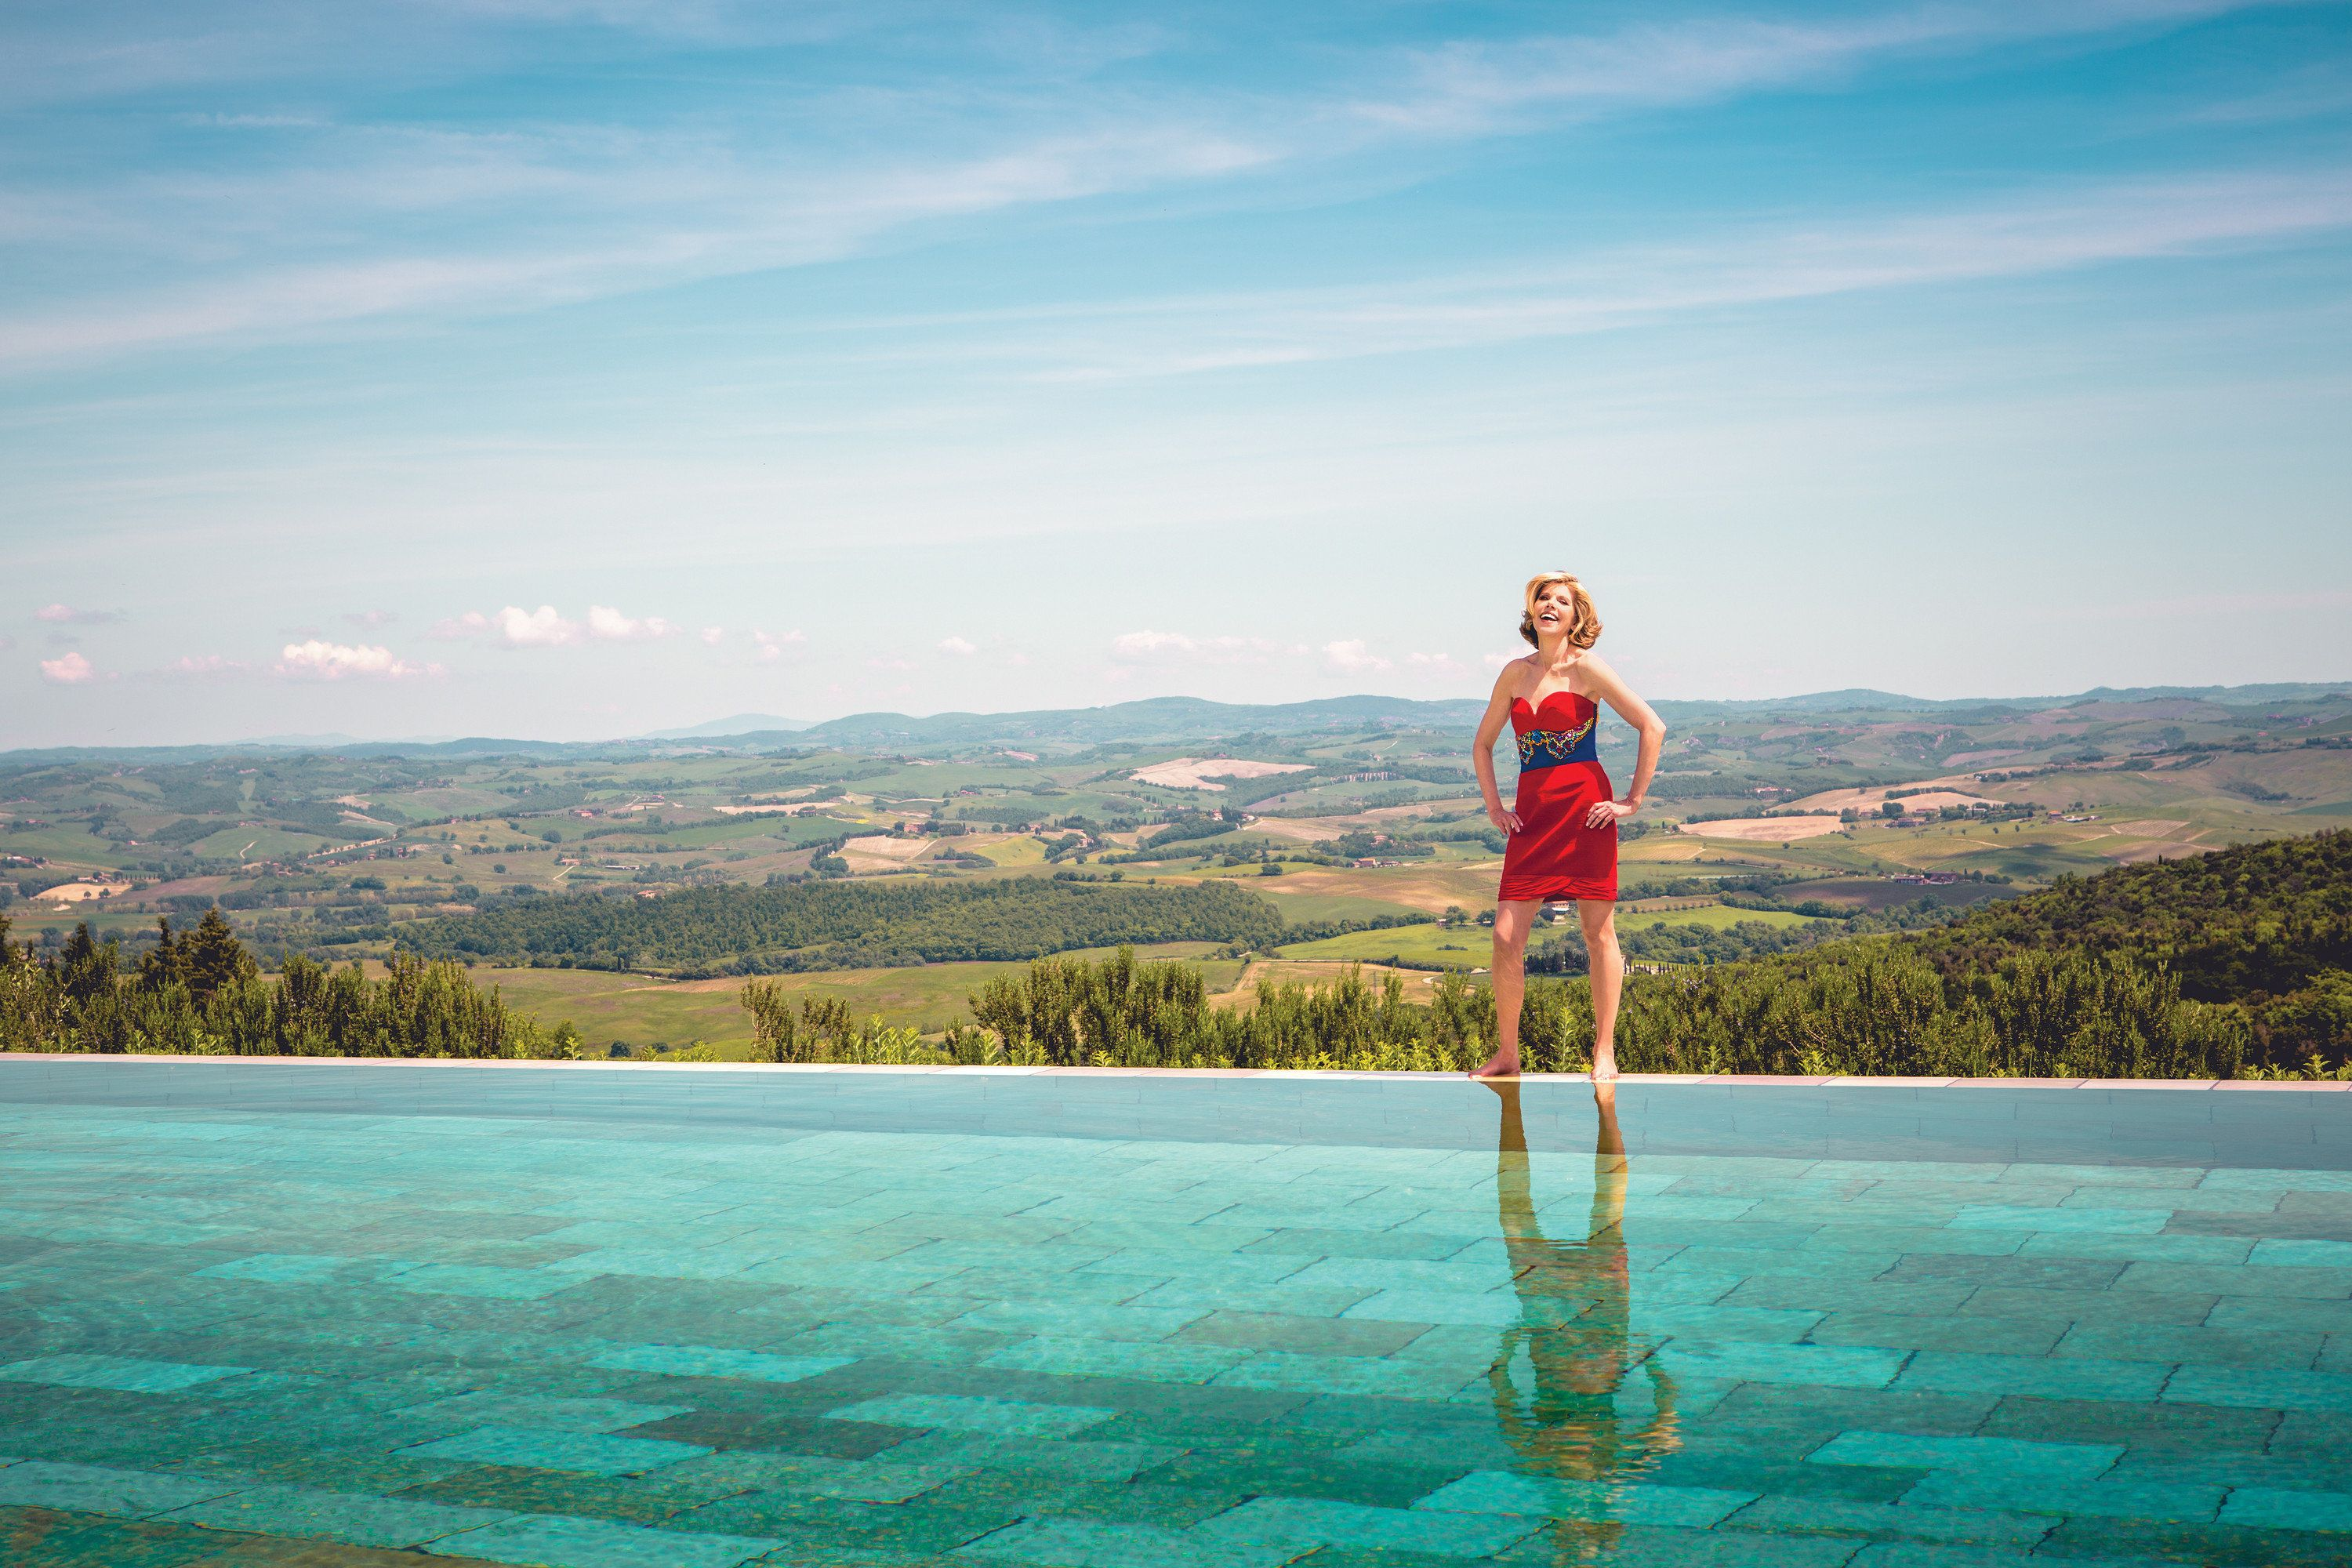 Christine Baranski stands poolside wearing a vibrant red and blue dress with a buccolic countryside stretching out behind her